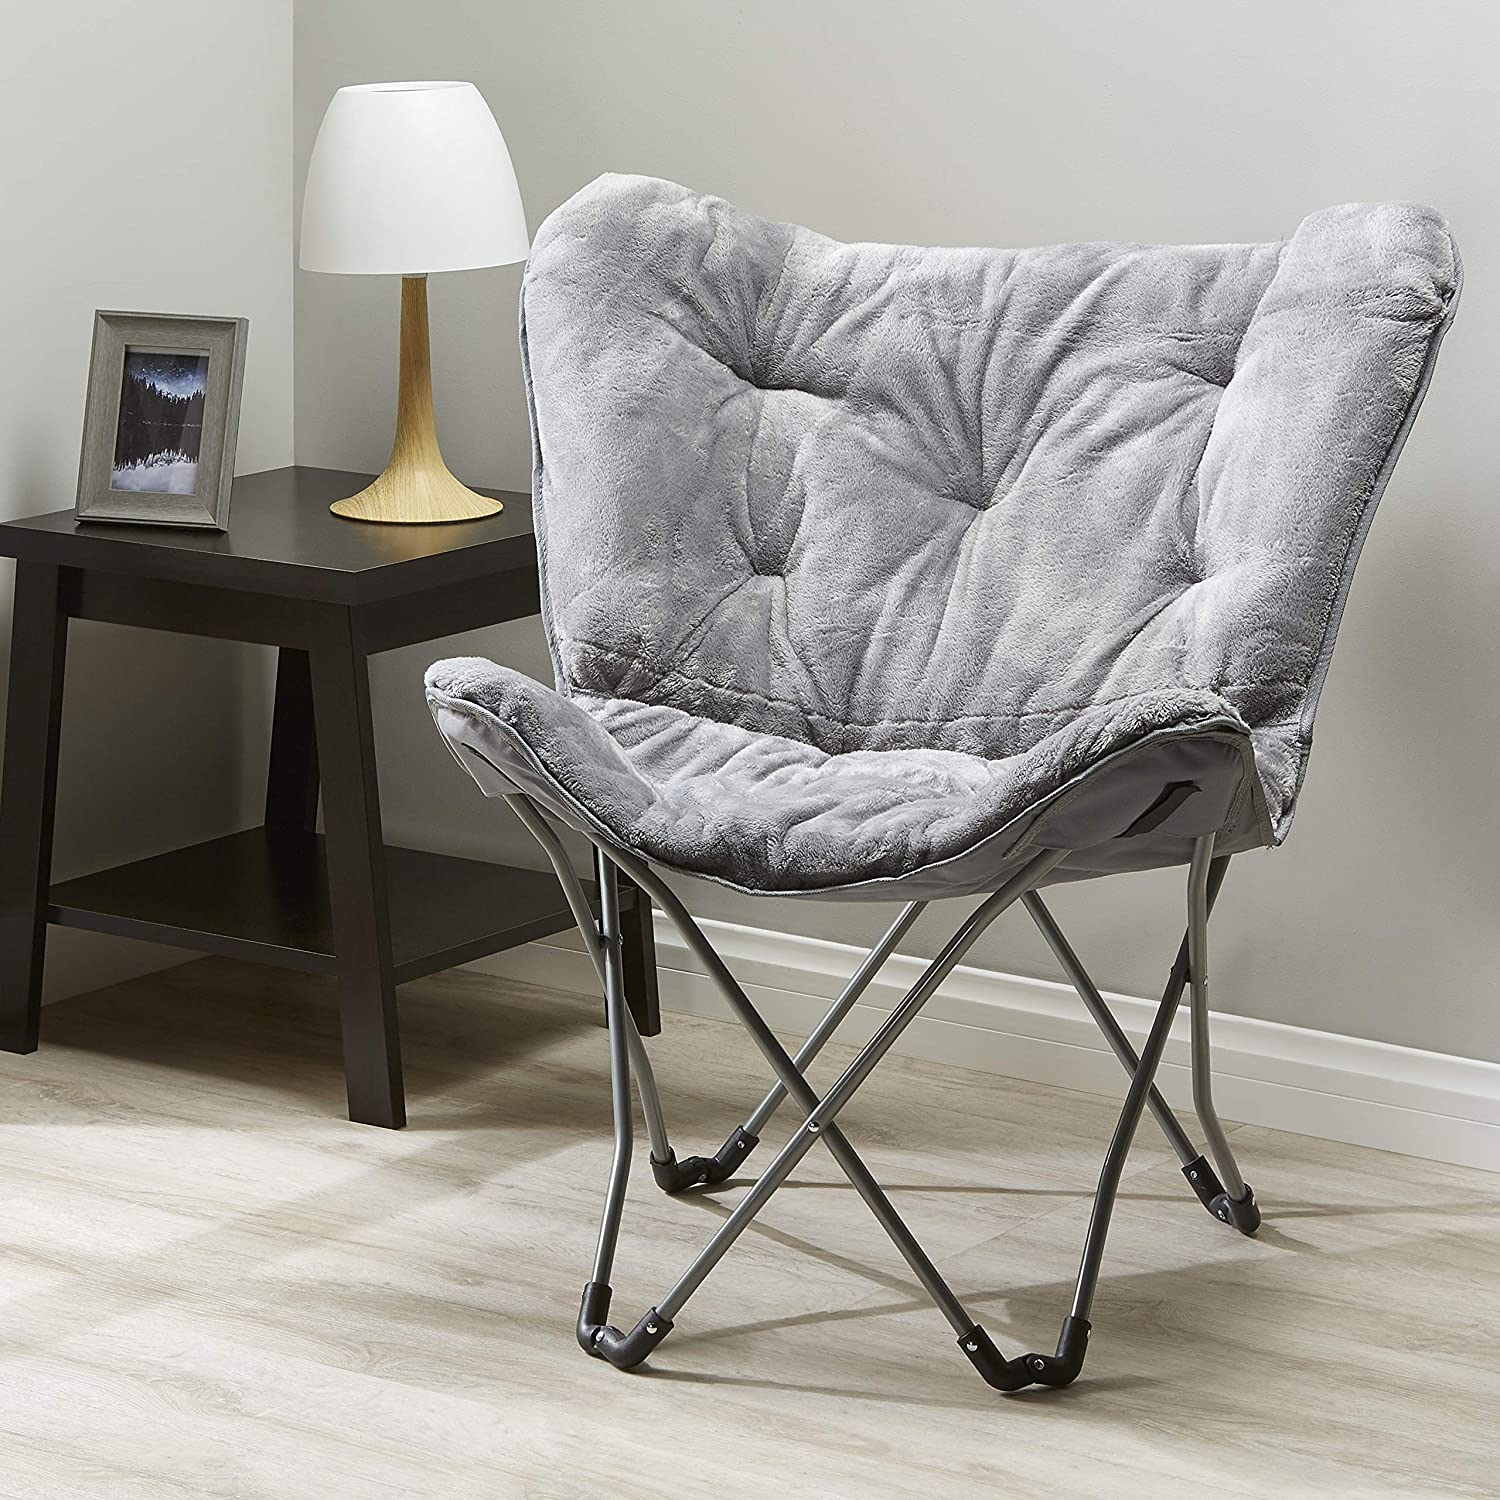 Mainstay Butterfly Chair in Teal Faux Fur Finish